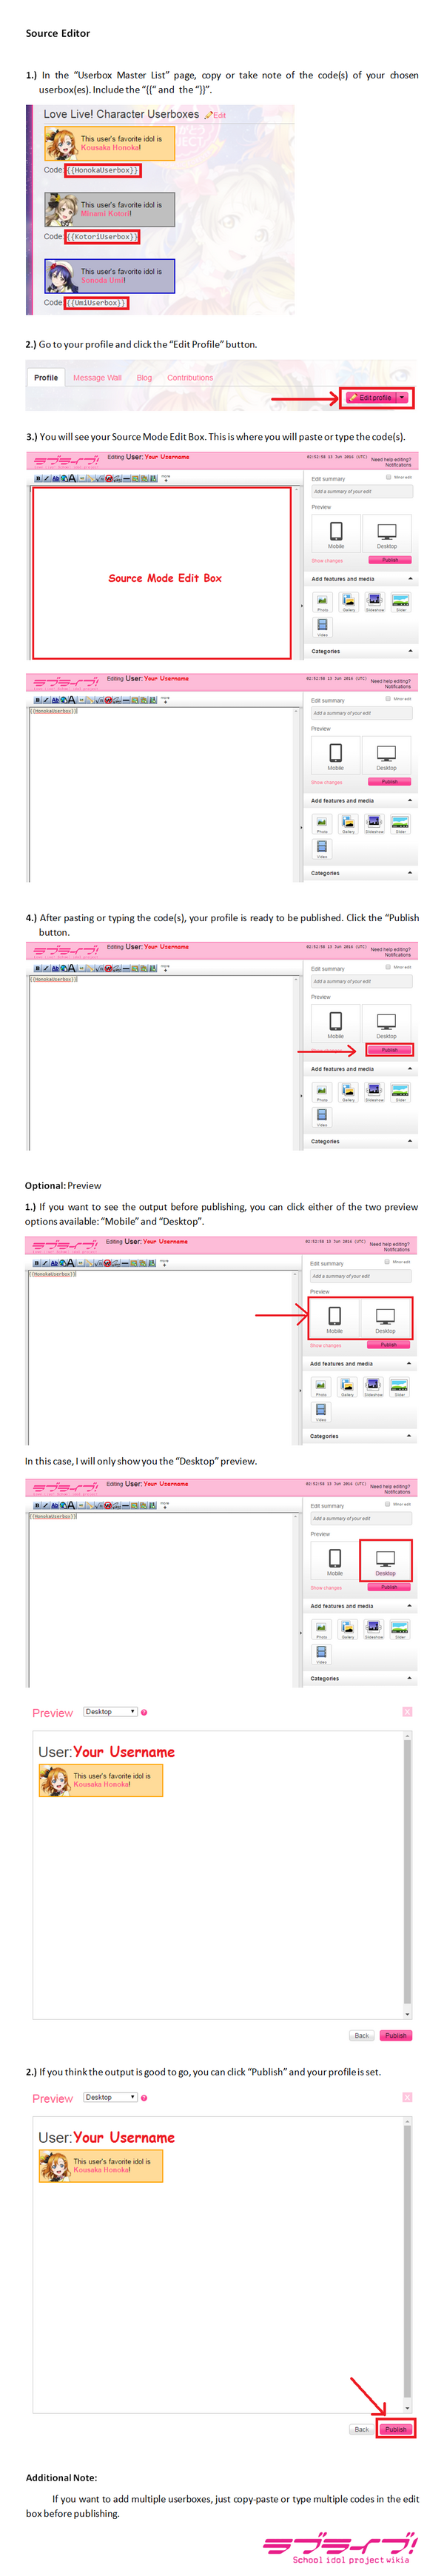 How to Add Userbox (Source Editor).png